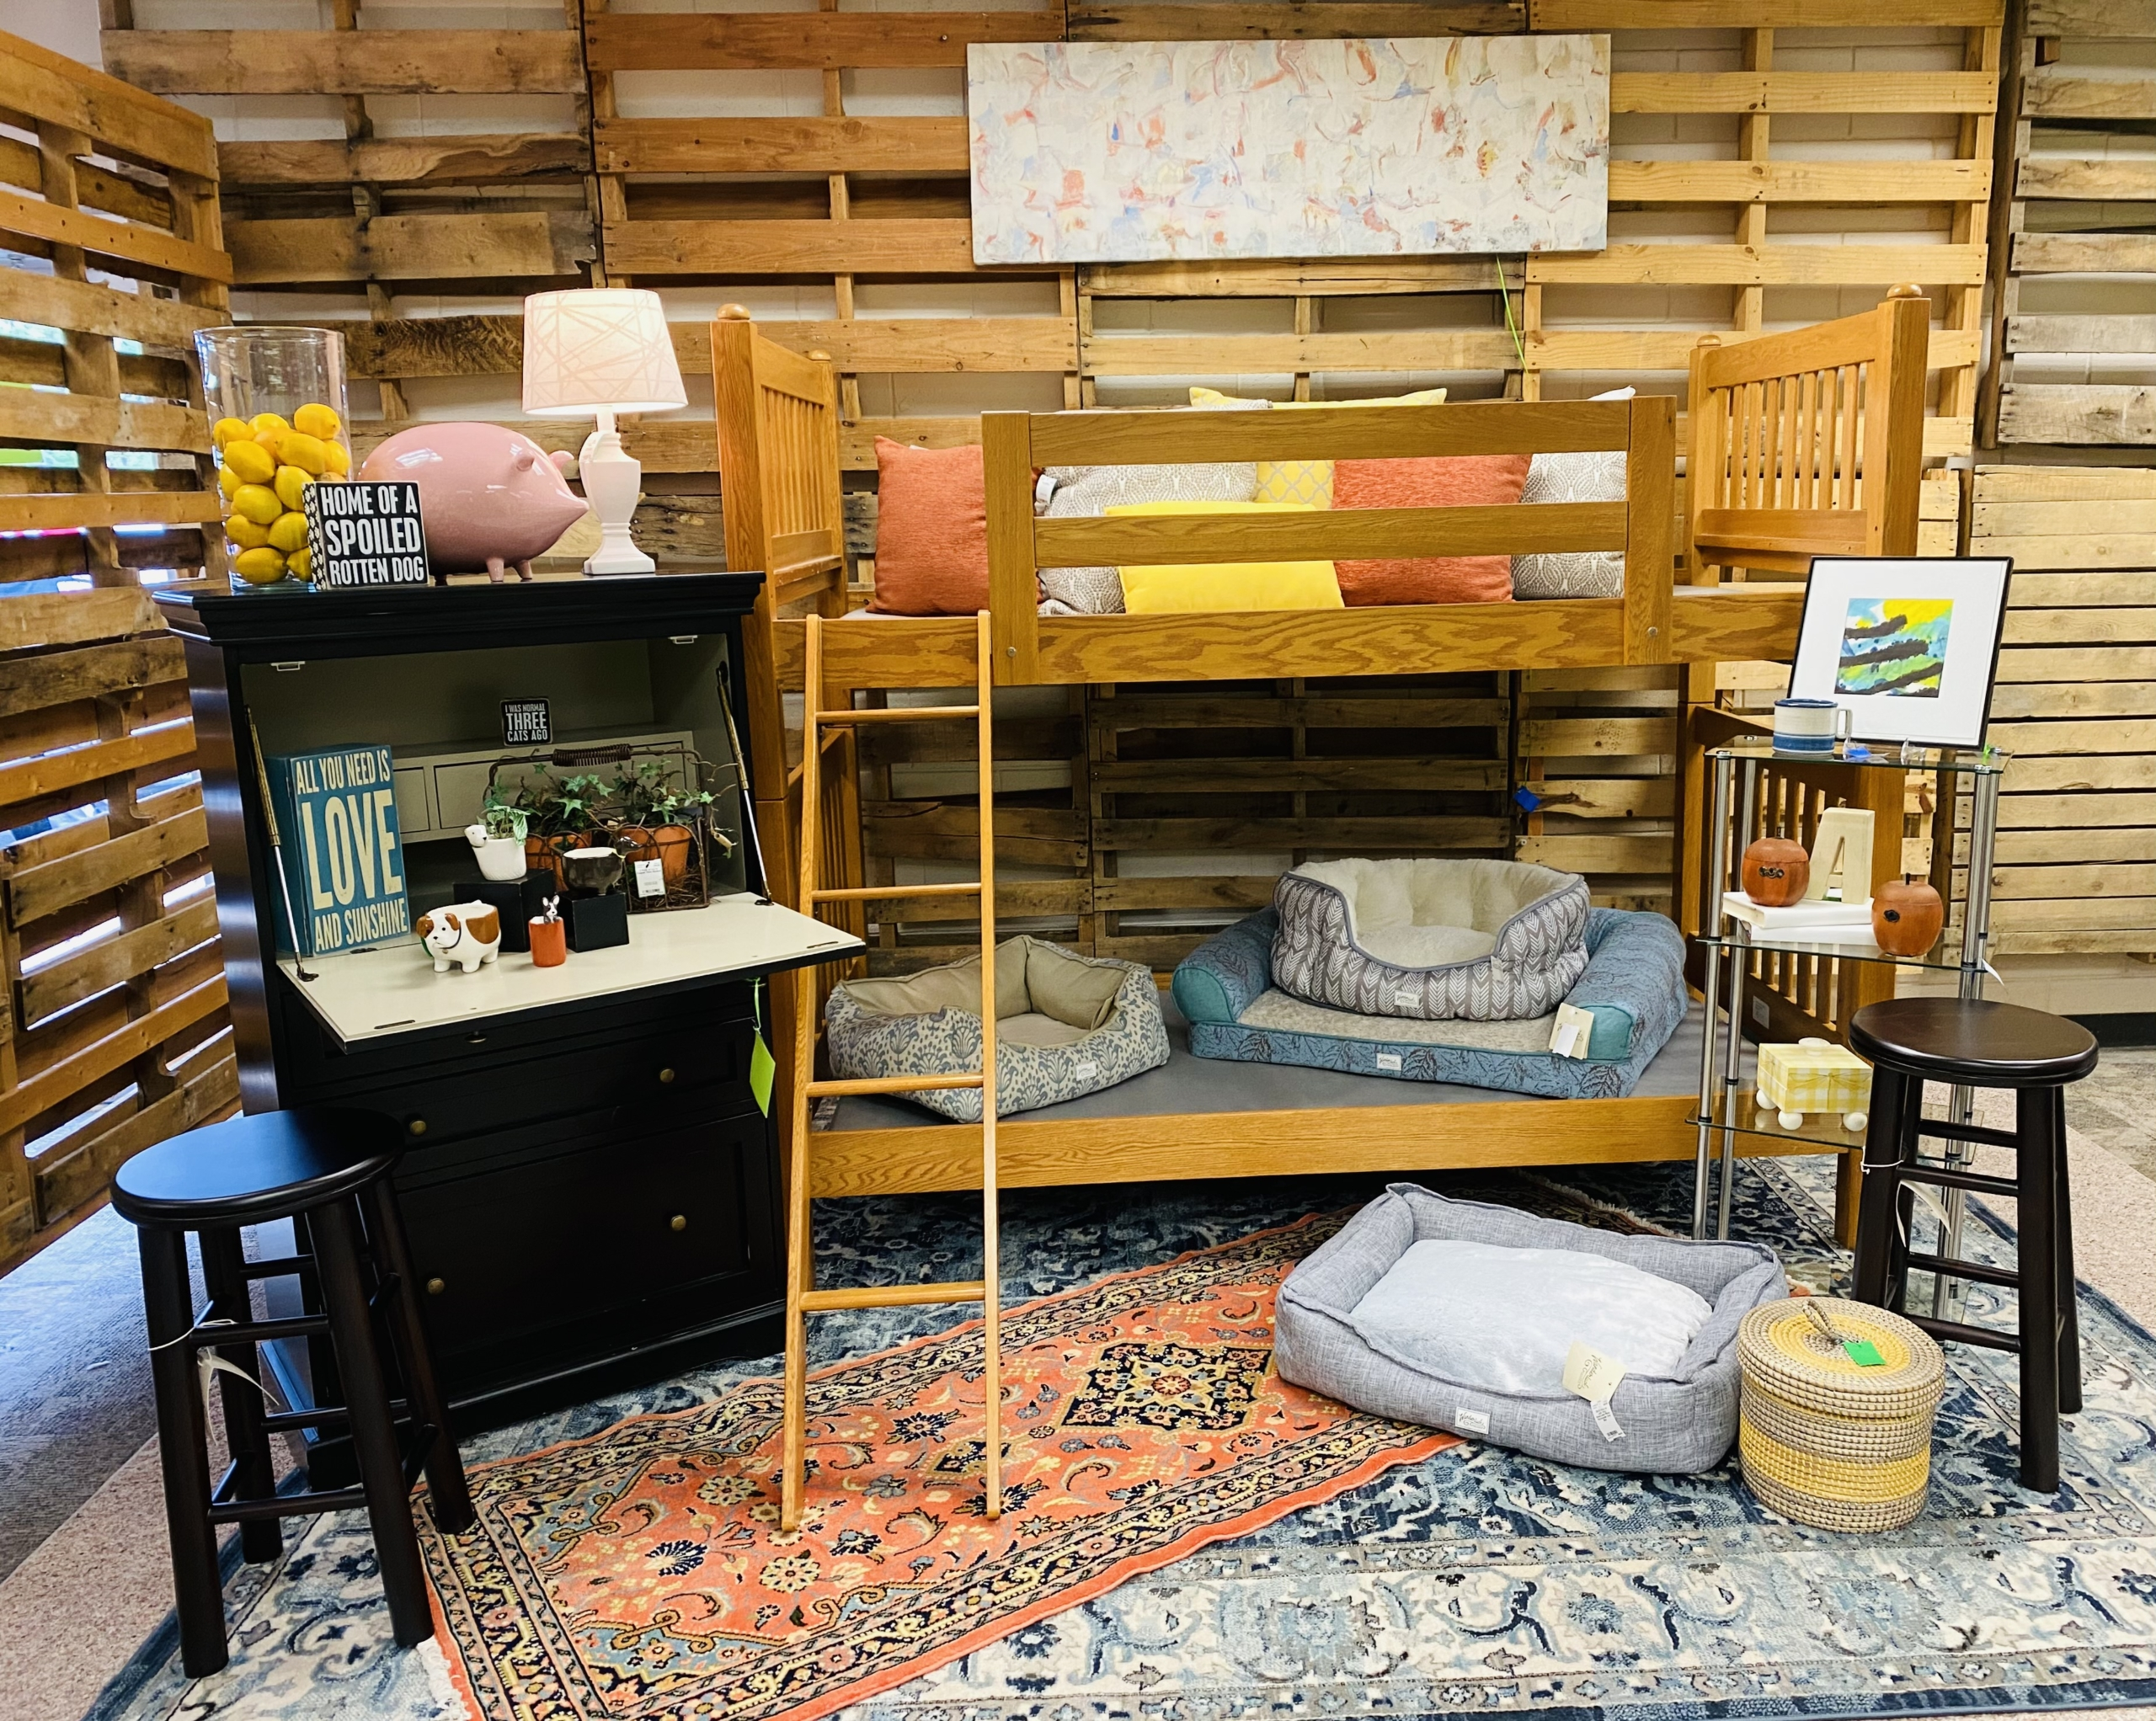 Lots of beds vignette at eyedia consignment furniture and home decor for sale Louisville KY